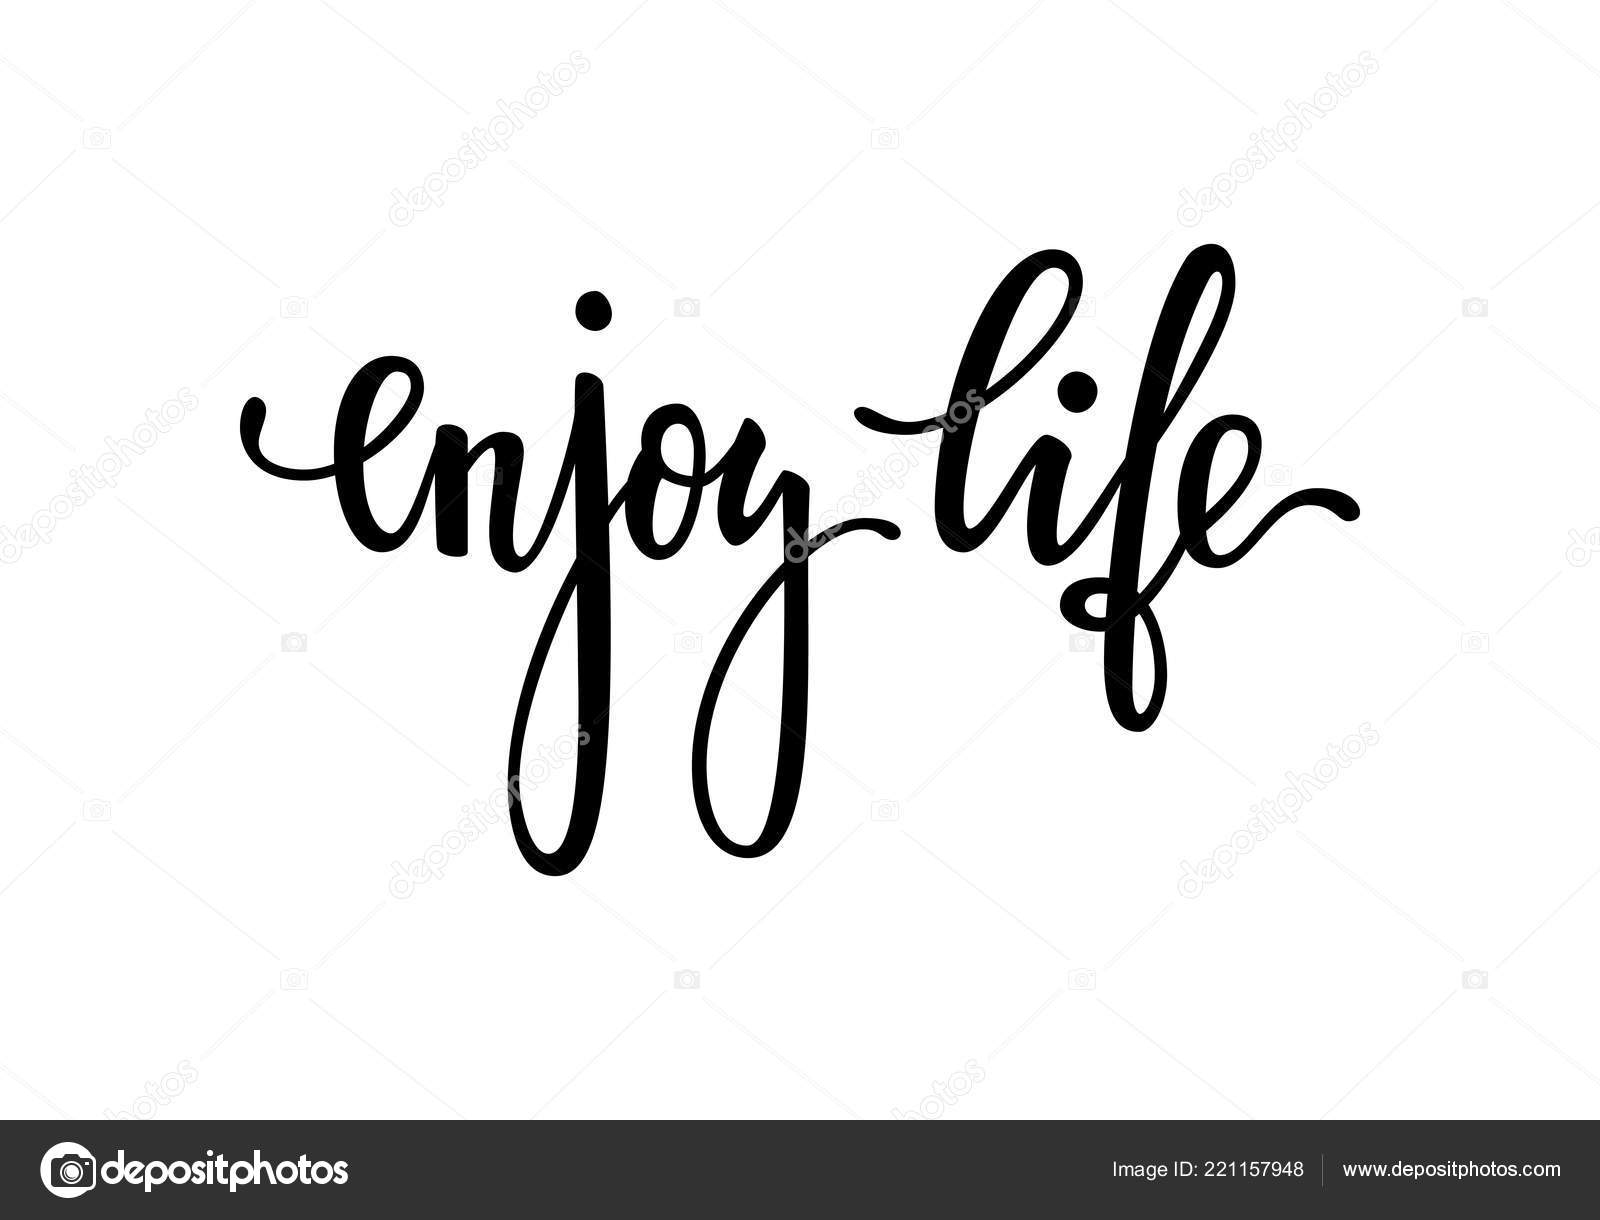 Enjoy Life Inspirational Motivational Quotes Hand Brush Lettering